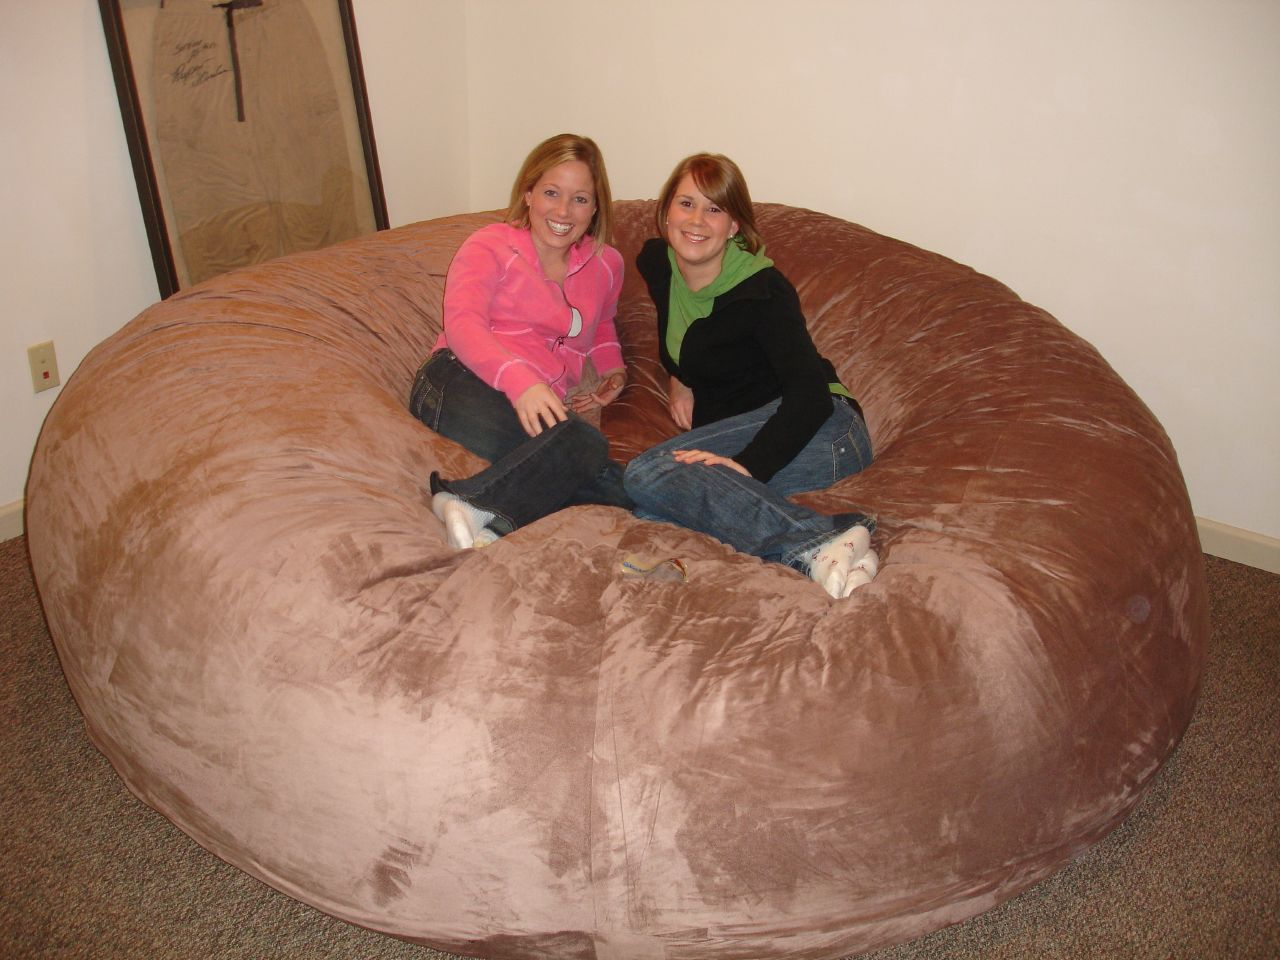 huge bean bag chair lovesac love sac comfy sack fombag - Giant Bean Bag Chairs